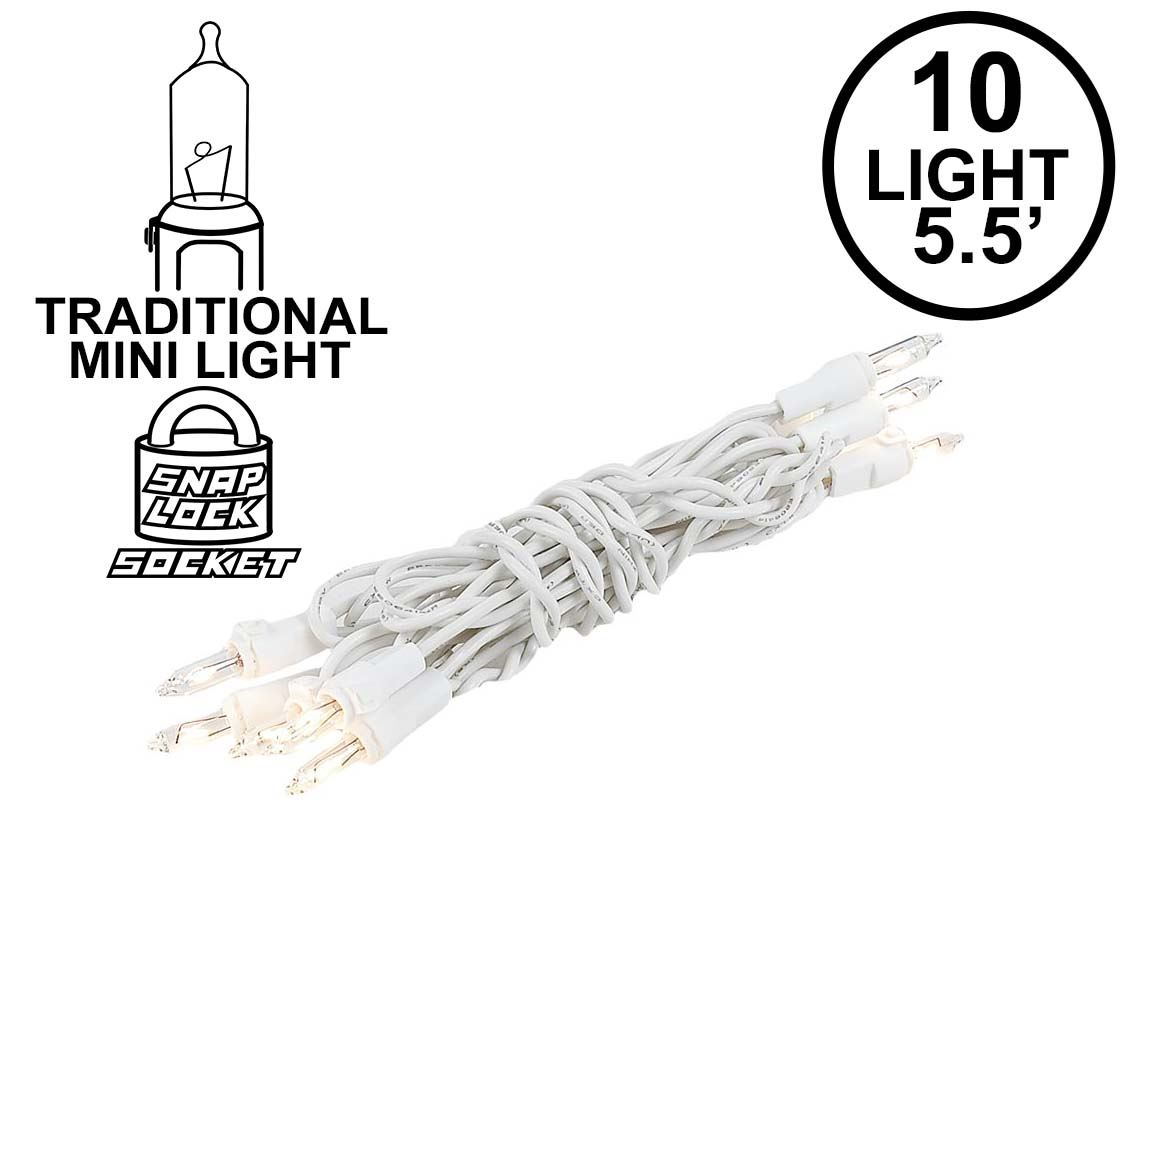 Picture of 10 Light 5.5' White Wire Christmas Mini Lights